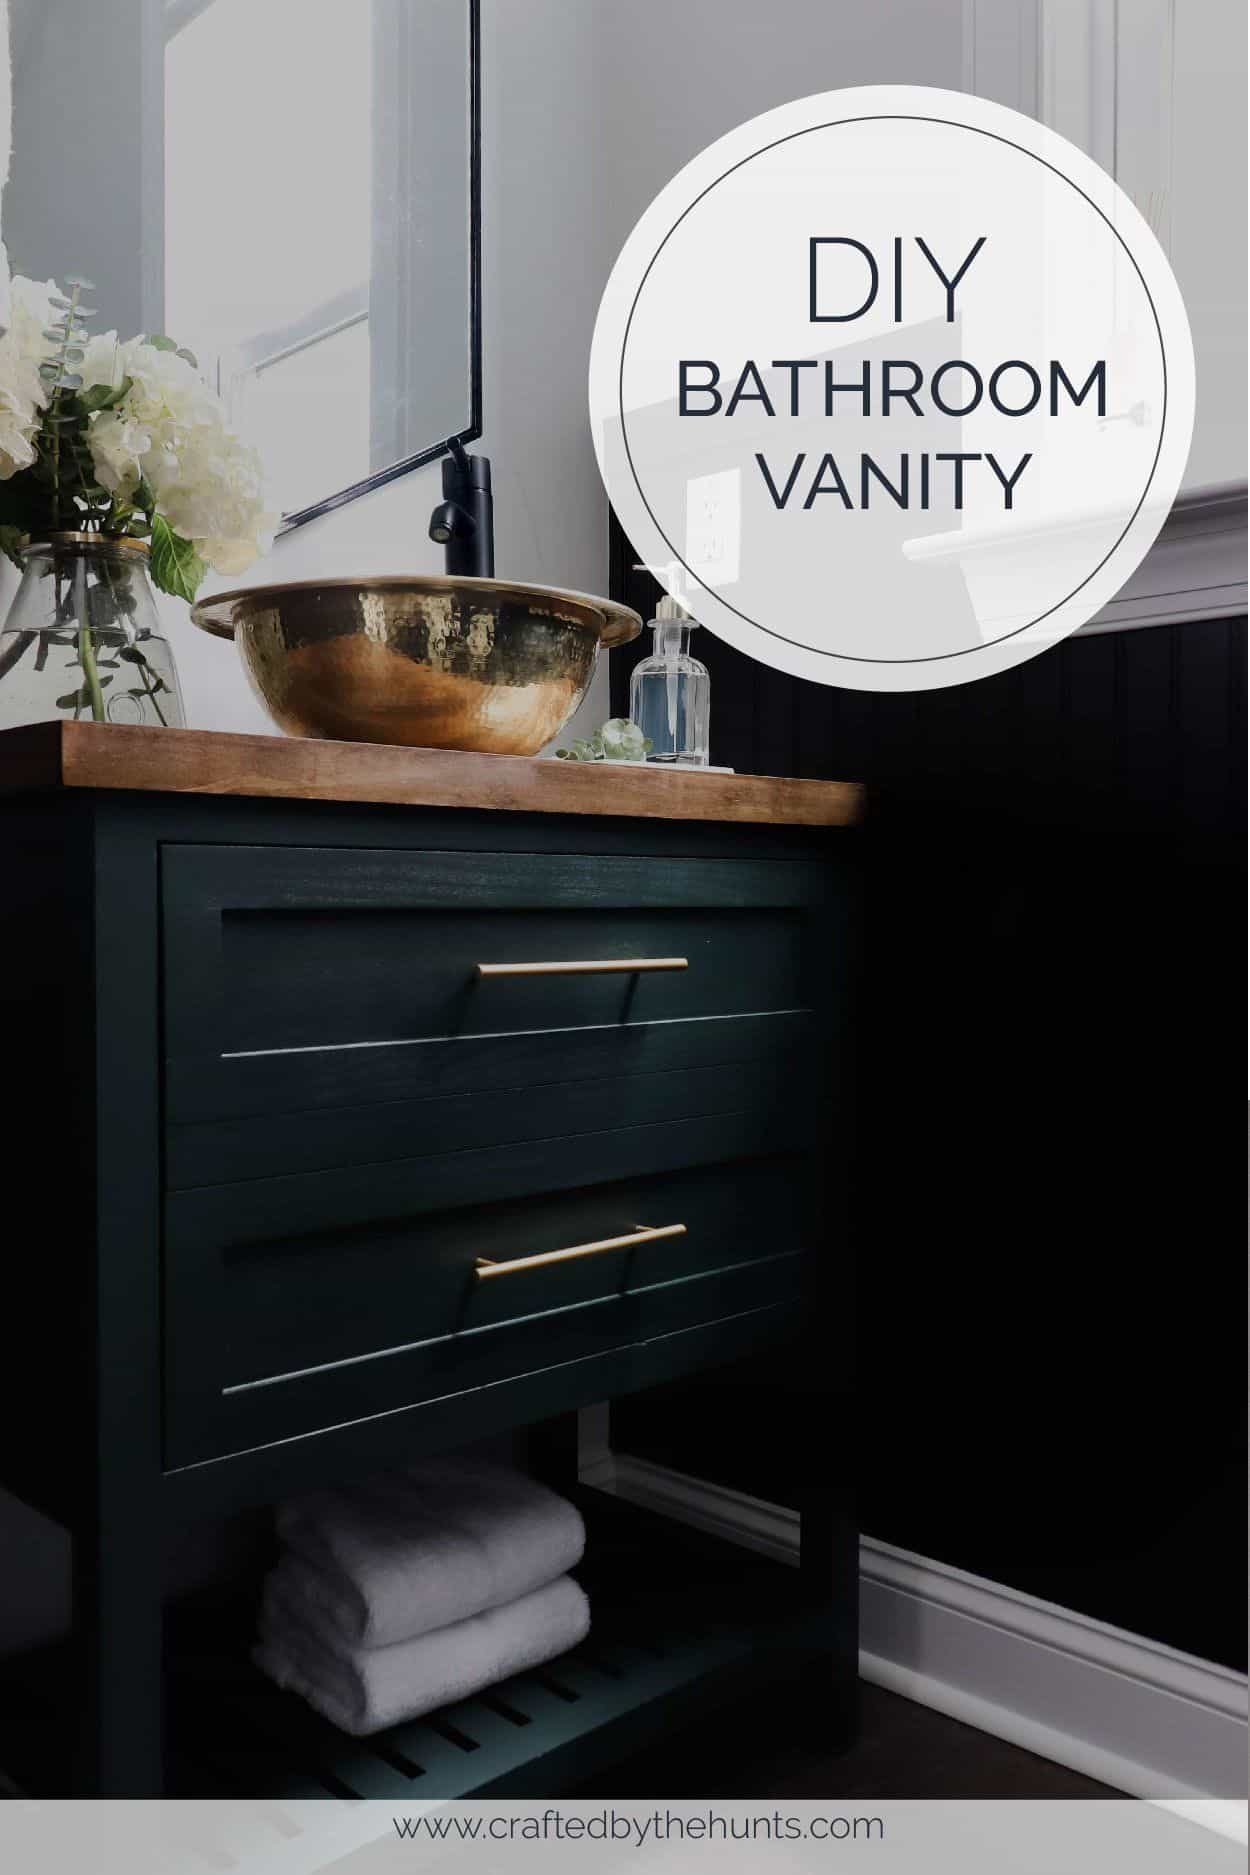 Build This Bathroom Vanity For 120 Crafted By The Hunts